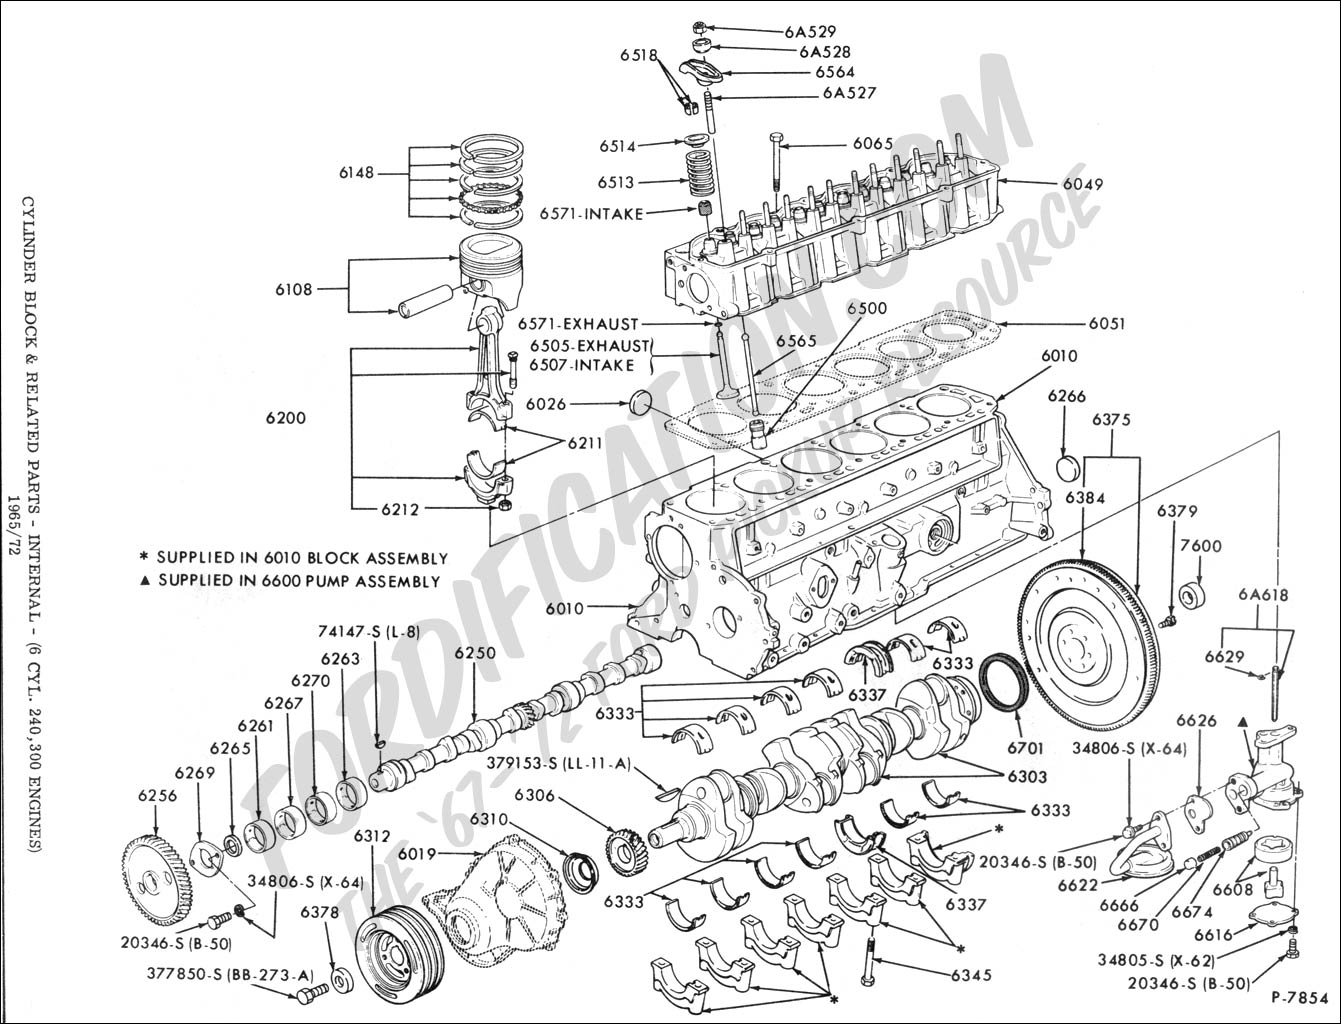 1966 ford f 150 wiring diagrams with 1966 Mustang 289 Wiring Diagram on 879177 Alternator Voltage Regulator Wiring also 1279644 1977 F 250 4x4 Dimensions moreover P 0900c1528007bdaa moreover Parts Front Suspension  ponents Diagram Car as well Schematics h.